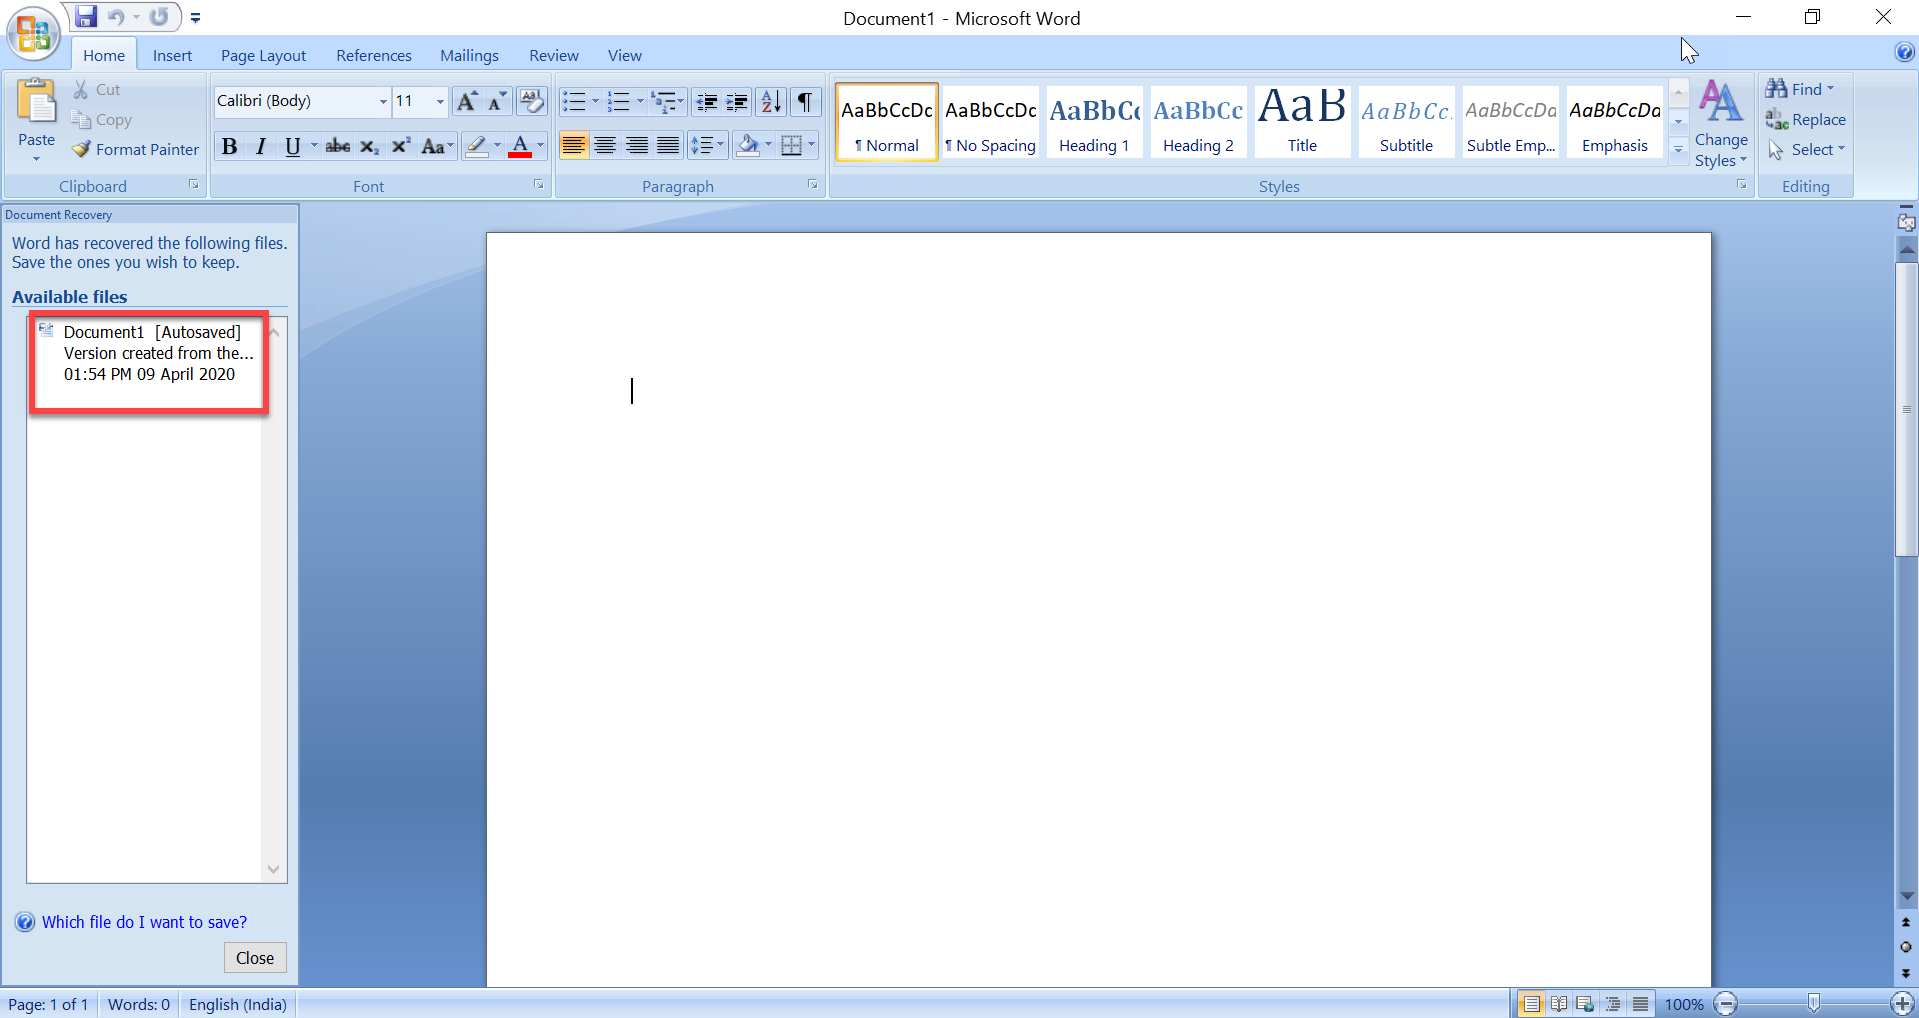 How to recover deleted word document in Windows 10